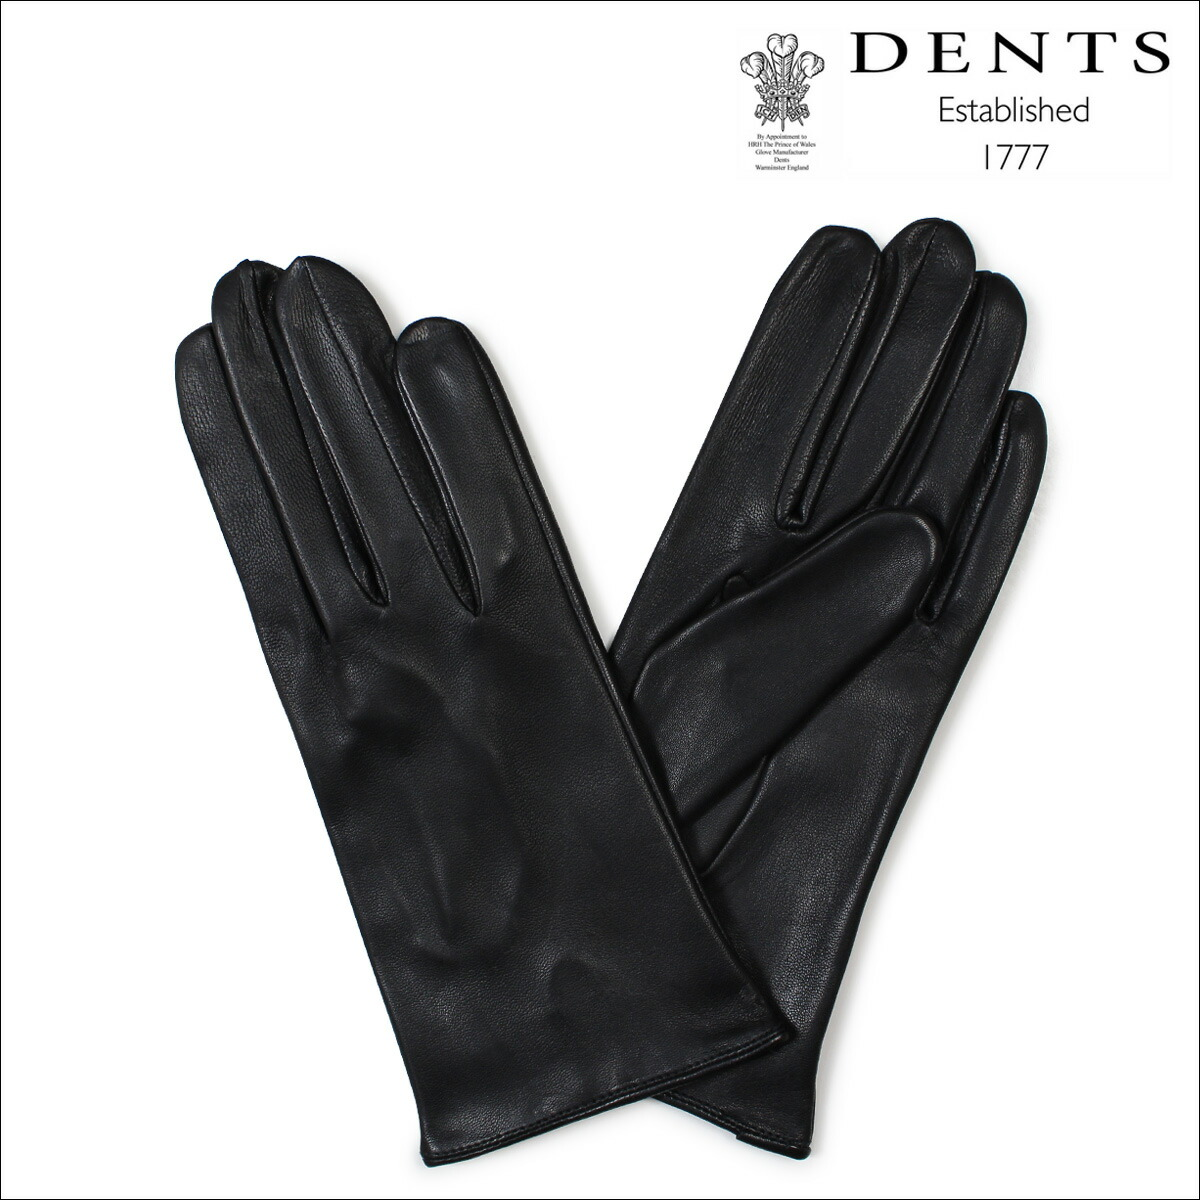 Mens leather gloves dents - Dents Gloves Mens Leather Gloves Dents James Bond Glove 5 1007 11 29 New In Stock